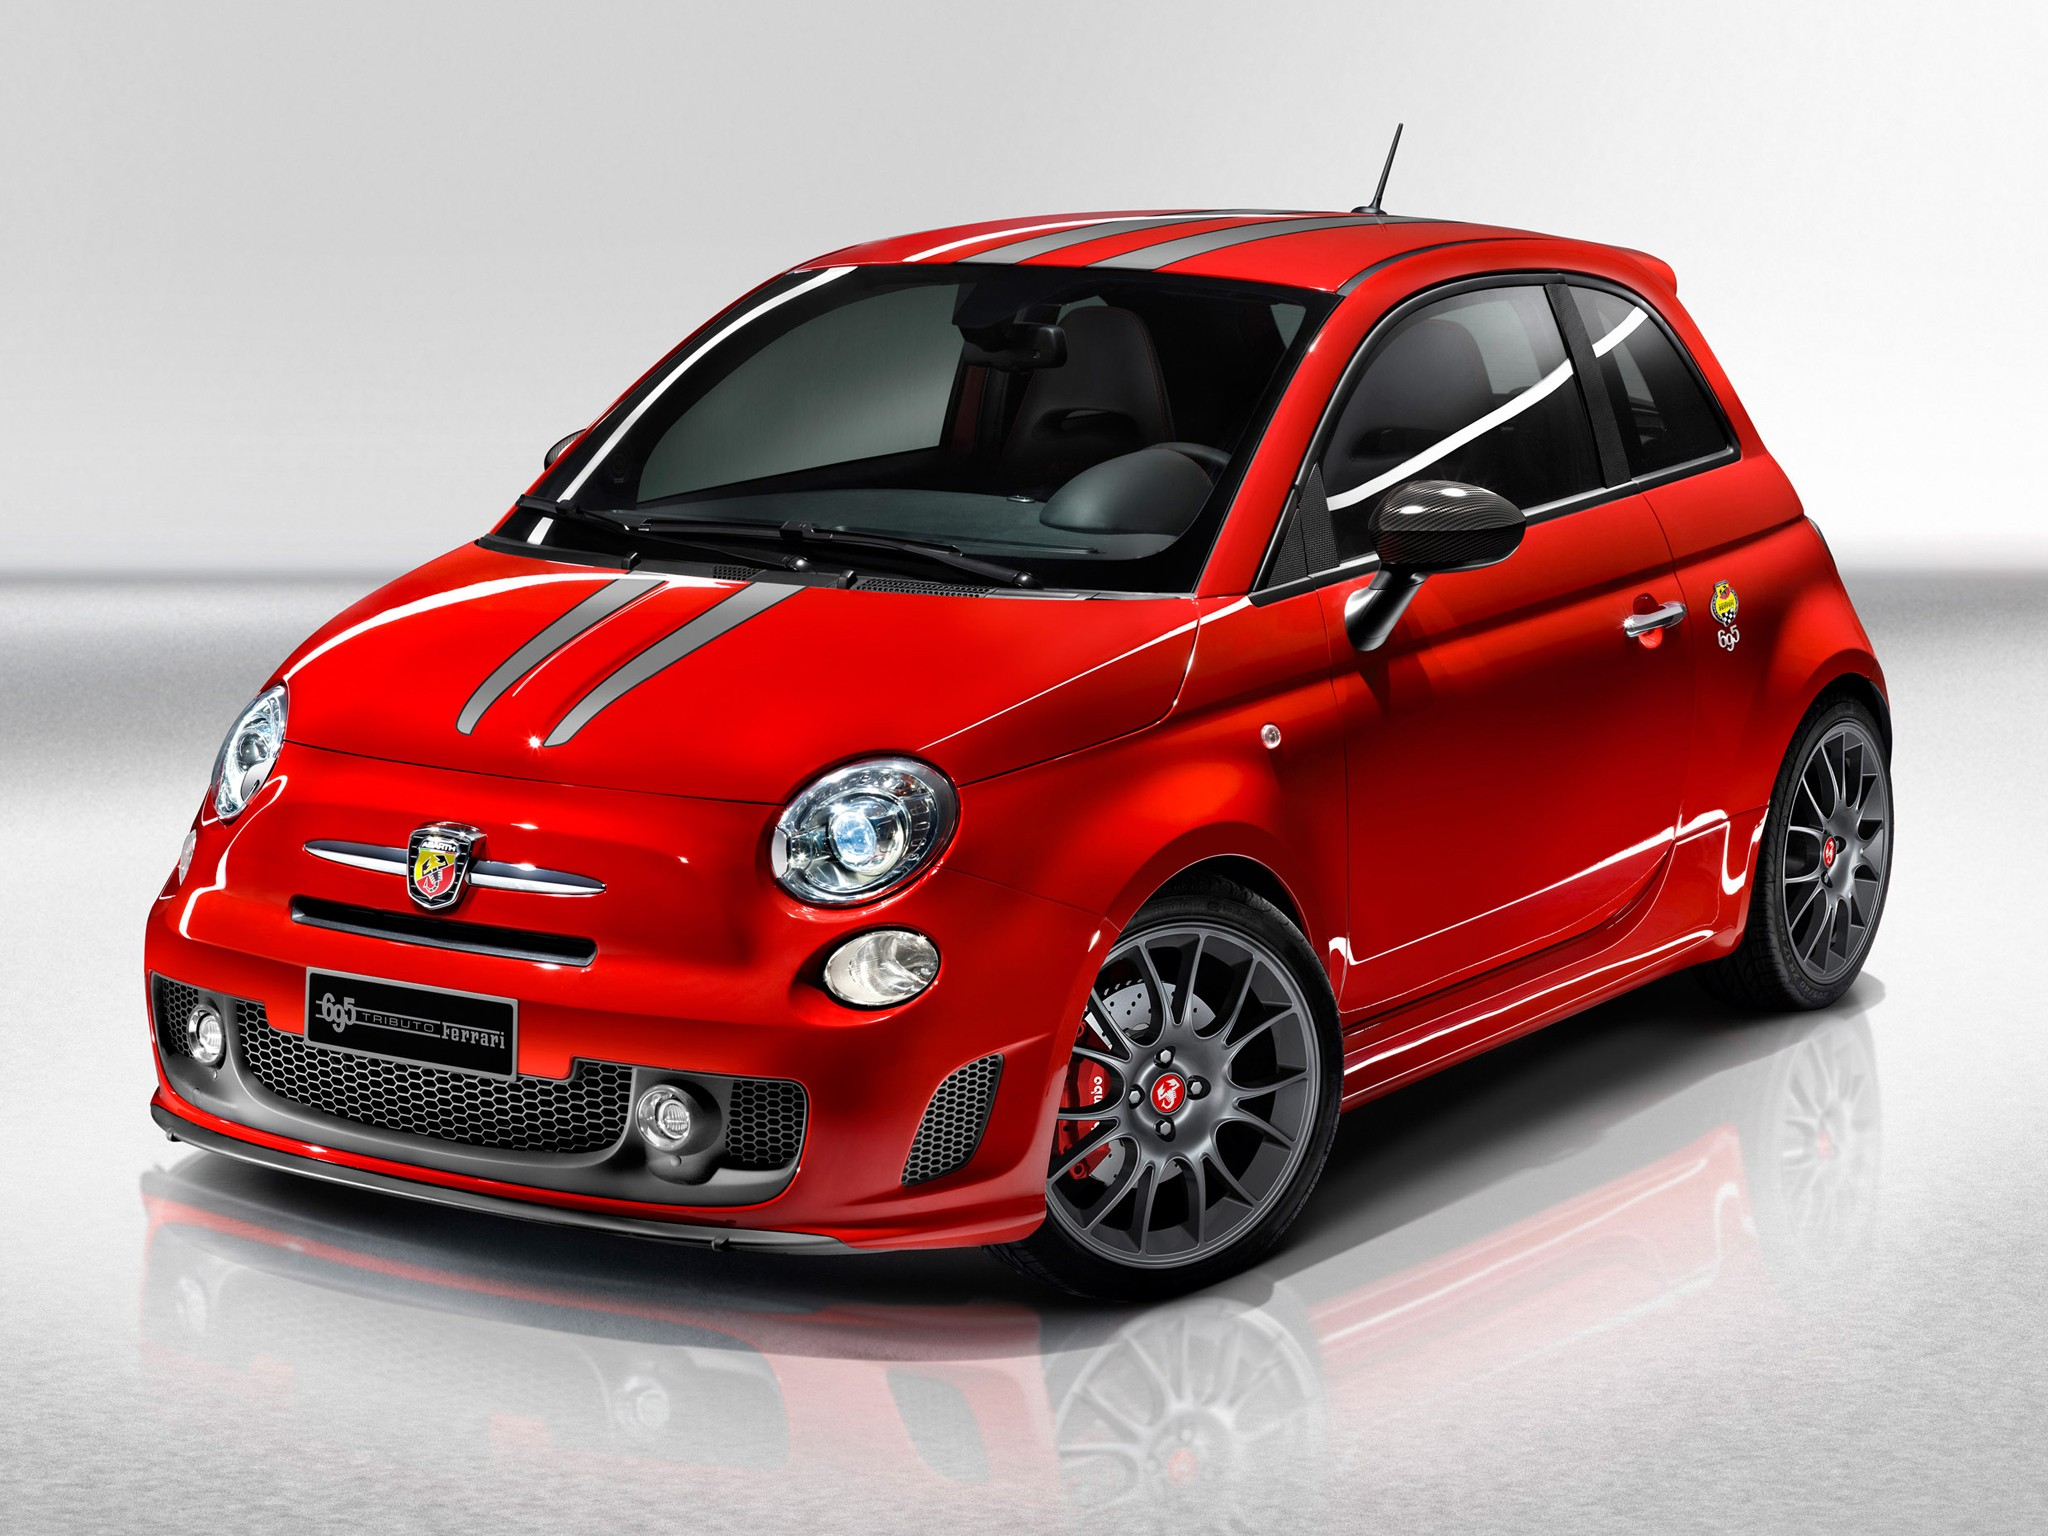 fiat 500 abarth 695 tributo ferrari specs photos 2009 2010 2011 2012 2013 2014 2015. Black Bedroom Furniture Sets. Home Design Ideas